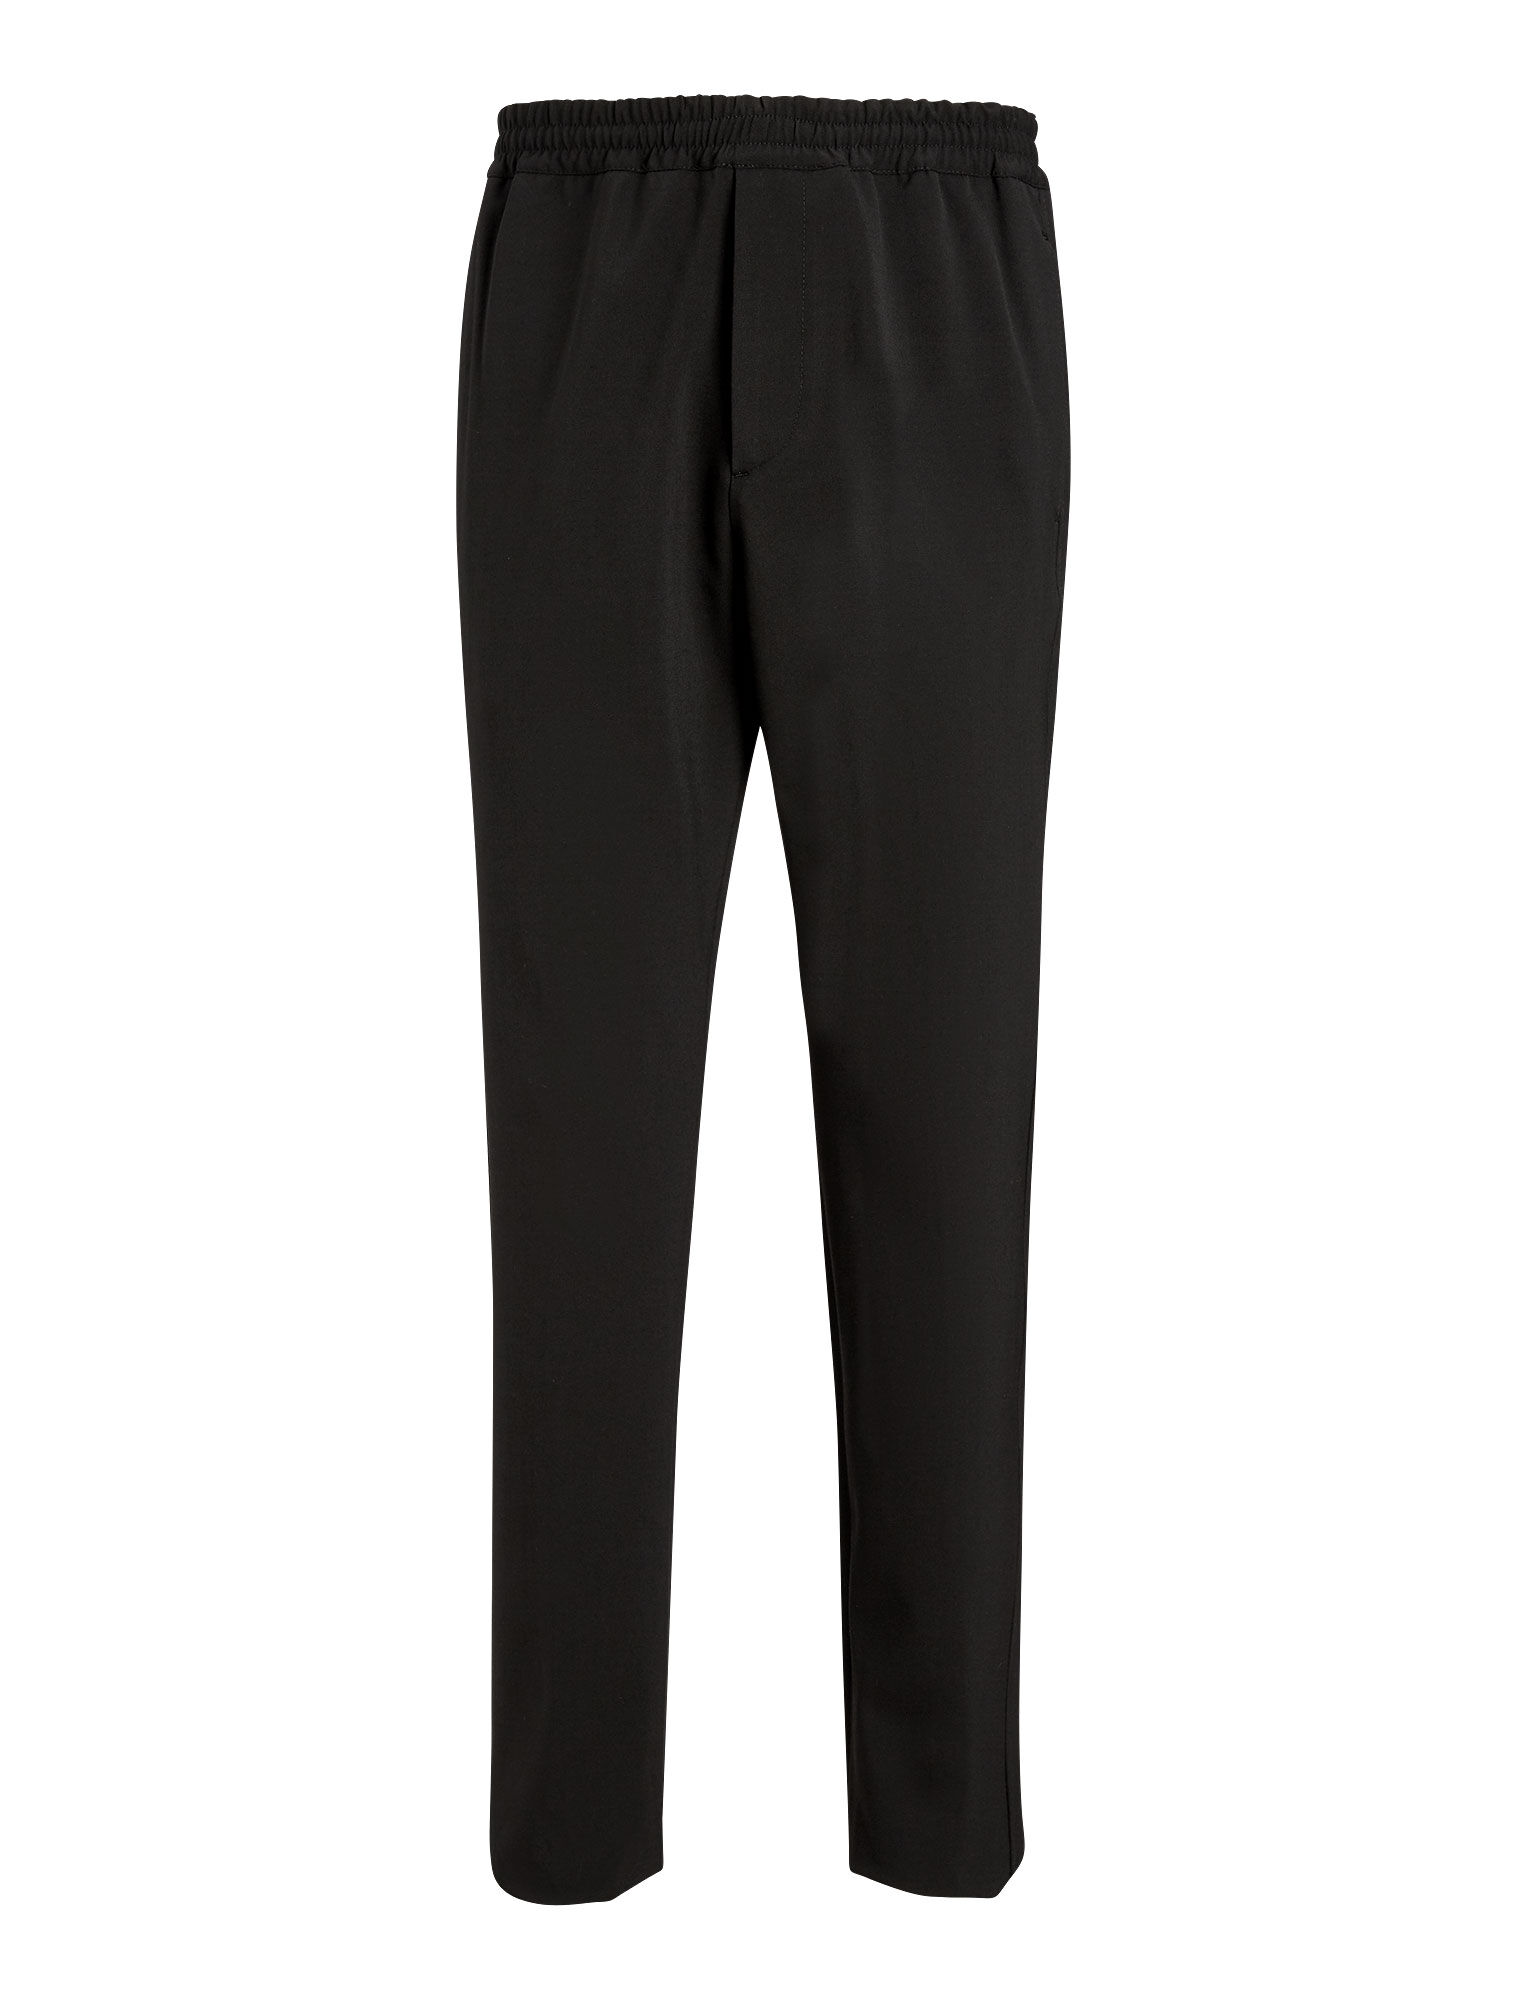 Joseph, Ettrick Techno Wool Stretch Trousers, in BLACK